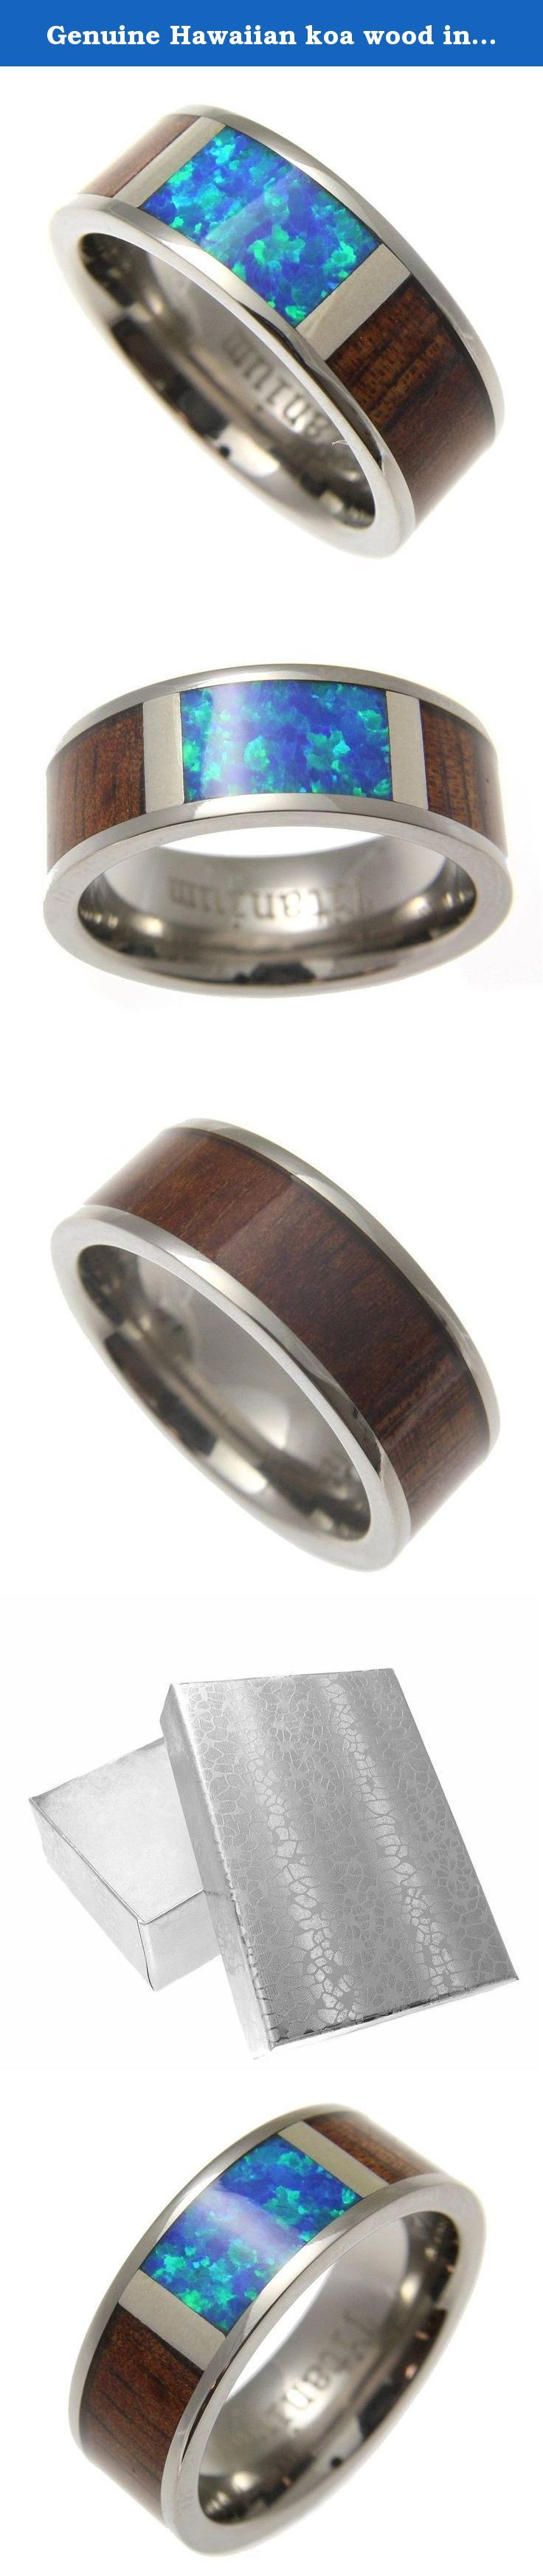 Genuine Hawaiian koa wood inlay opal band ring titanium comfort fit 8mm size 7.5. Genuine Hawaiian koa wood inlay opal band ring titanium comfort fit 8mm size 7.5.